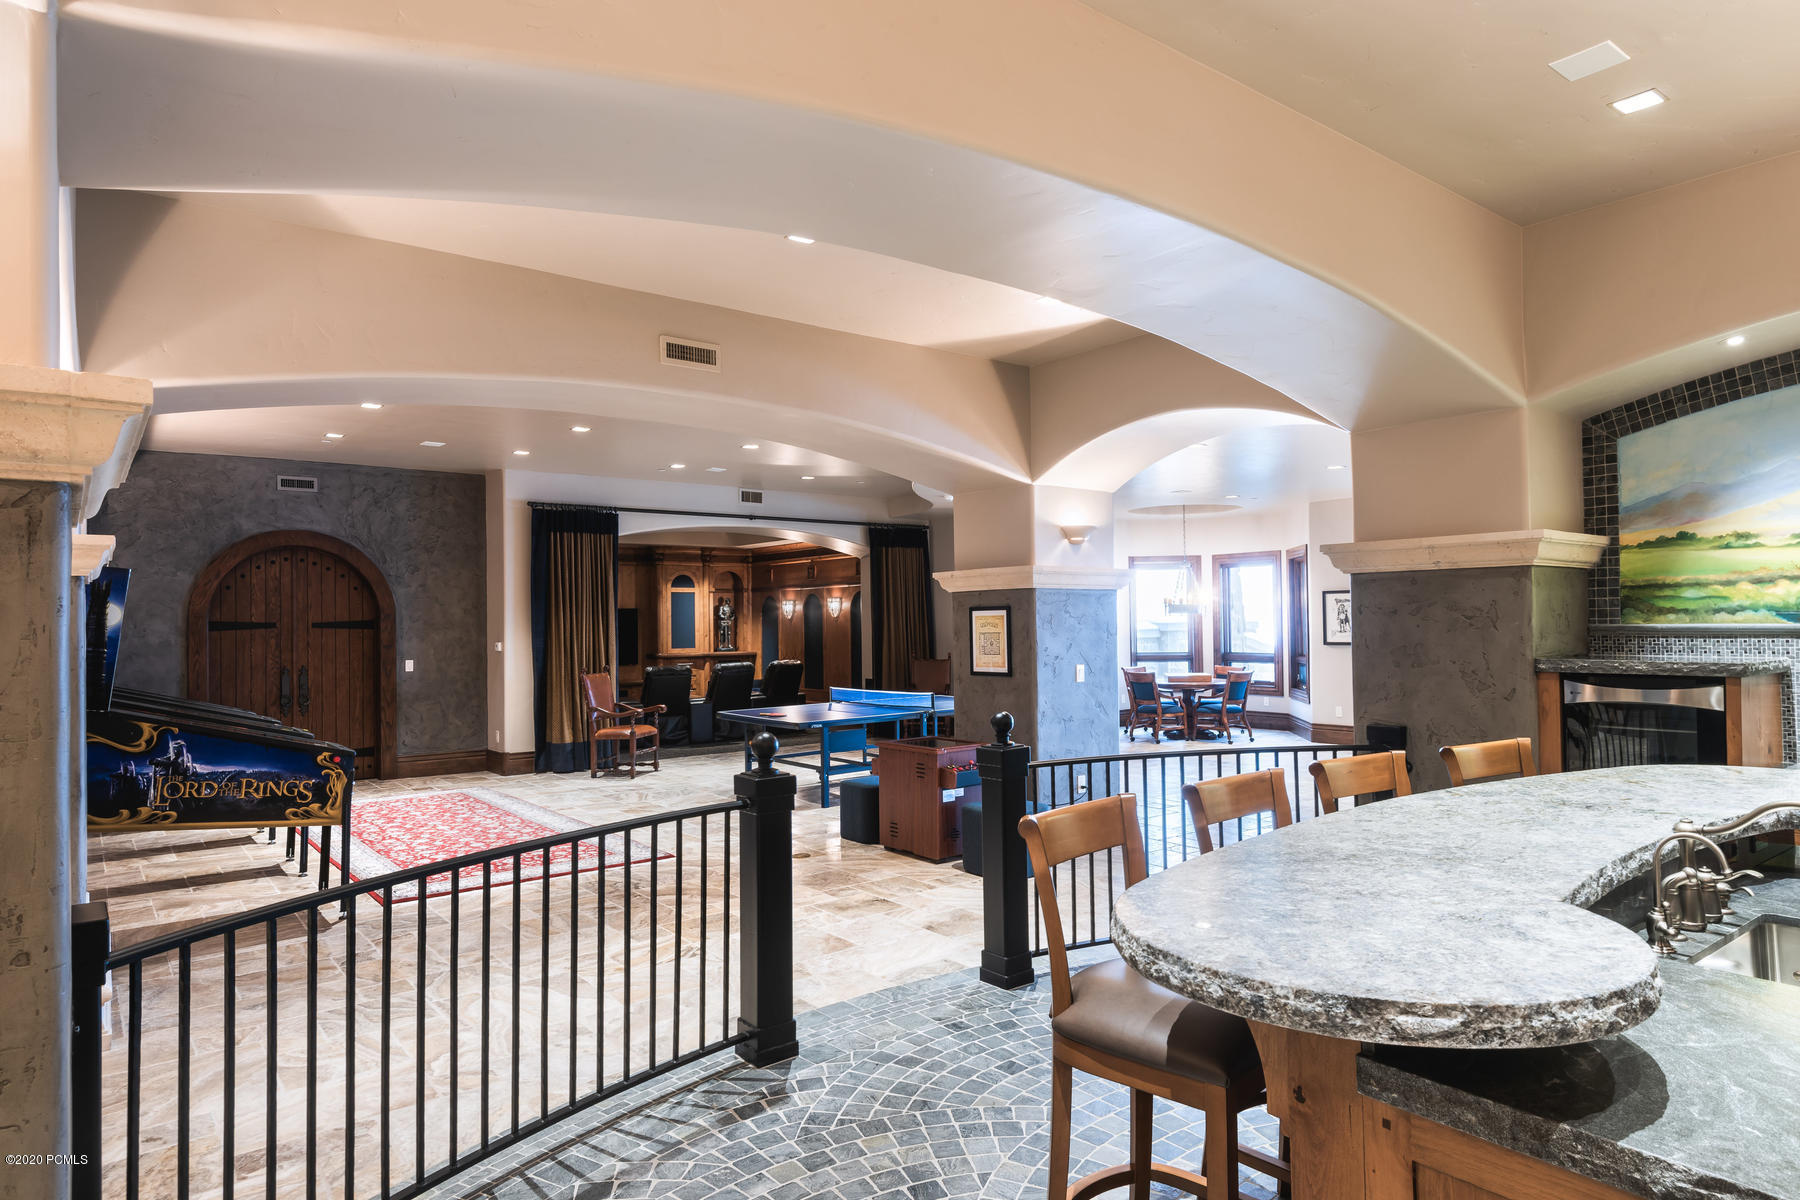 8066 Red Fox Court, Park City, Utah 84098, 5 Bedrooms Bedrooms, ,8 BathroomsBathrooms,Single Family,For Sale,Red Fox,20190109112430415765000000